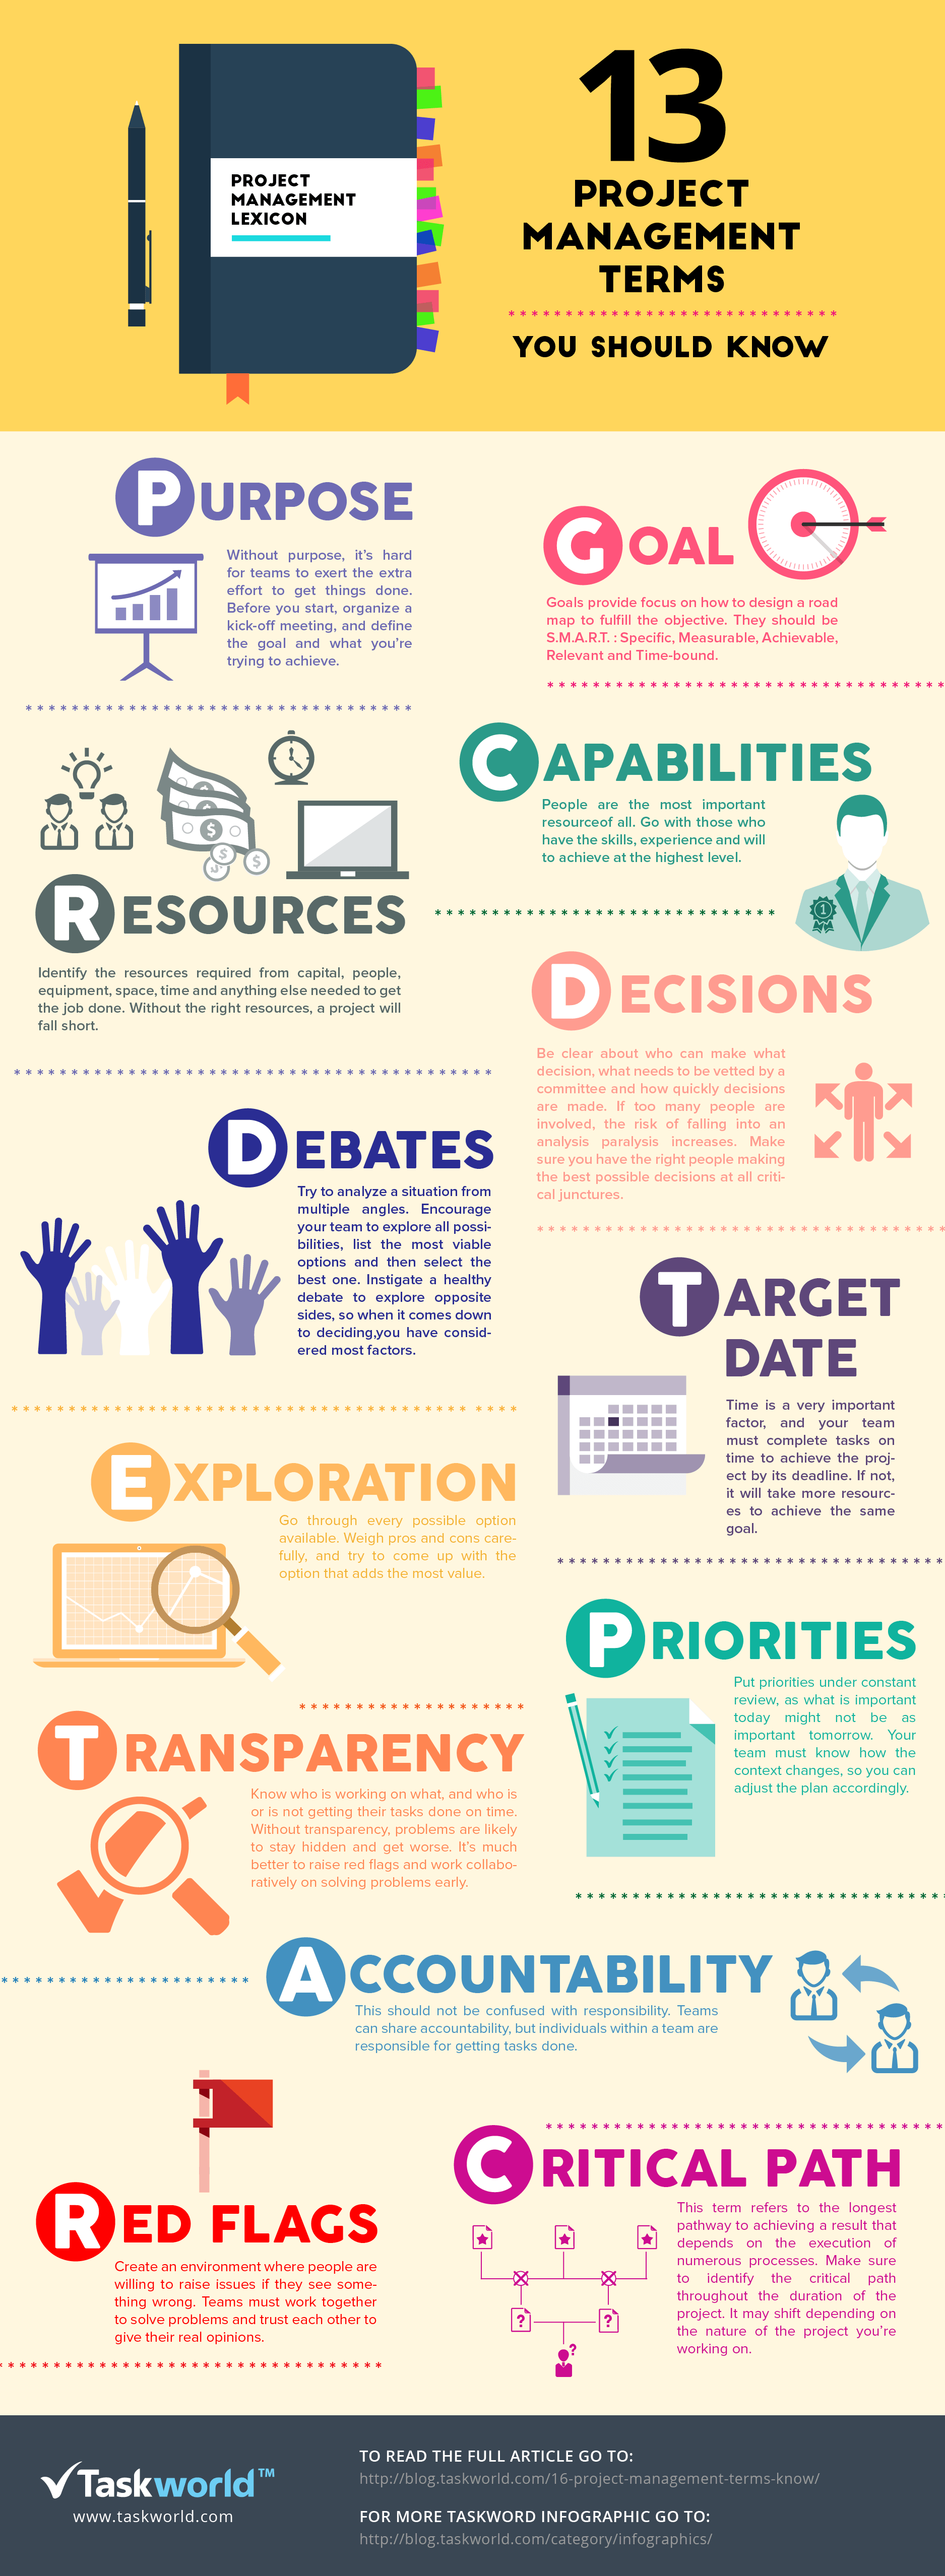 top 13 project management terms infographic